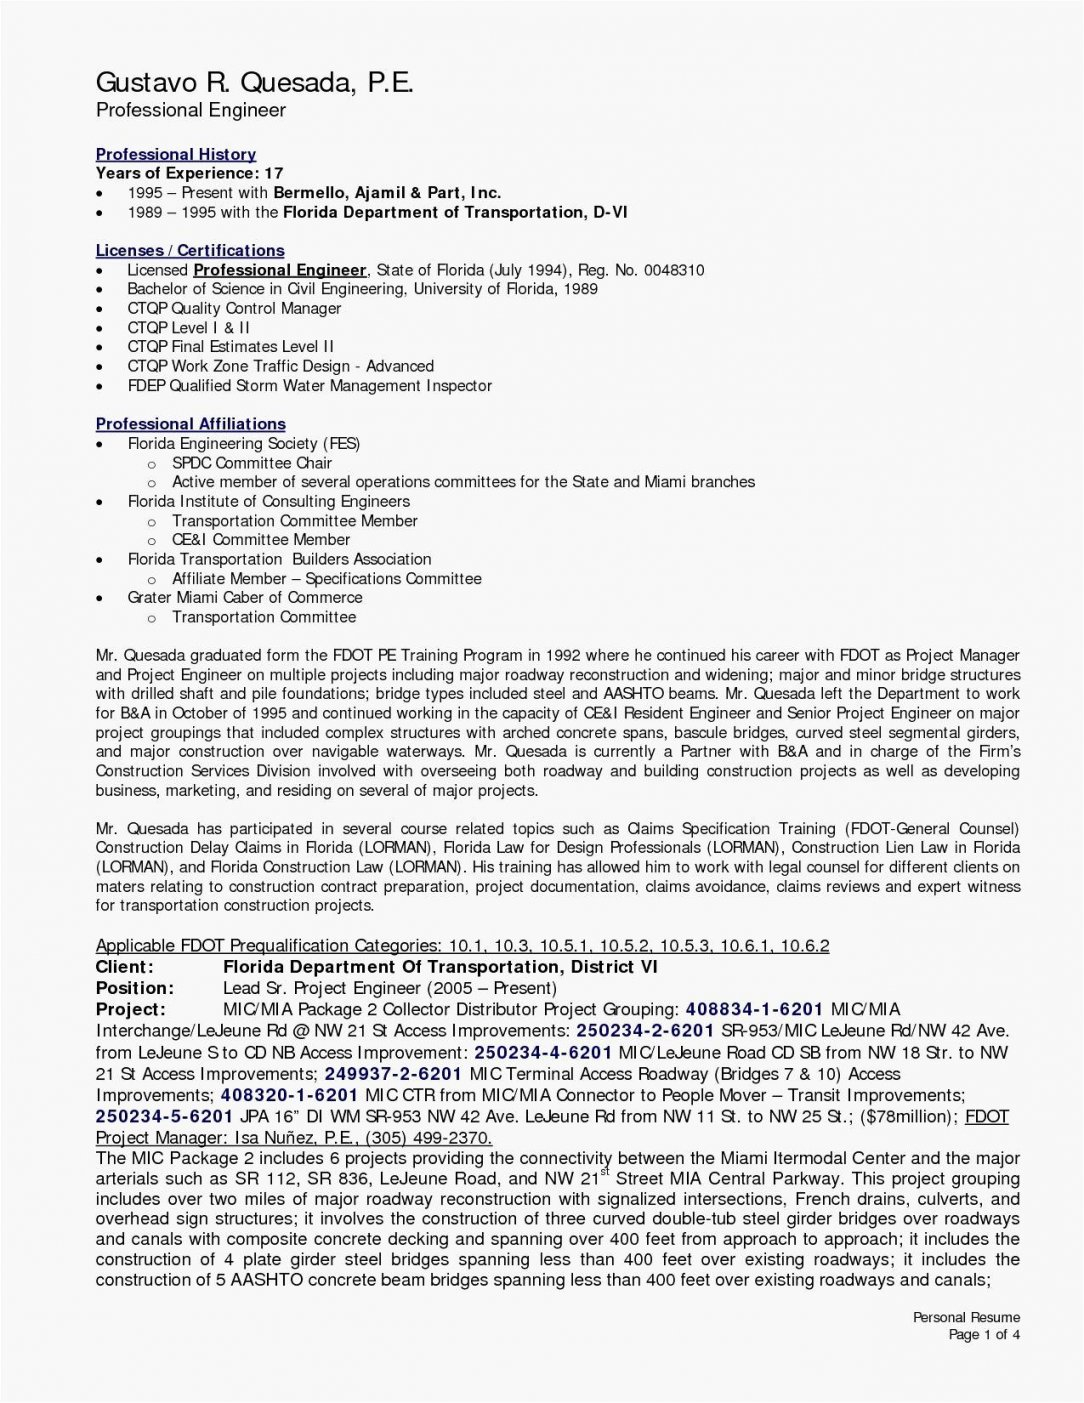 Case Manager Cover Letter Template - Manager Resume Manufacturing Operations Lean Supervisor Project Pdf